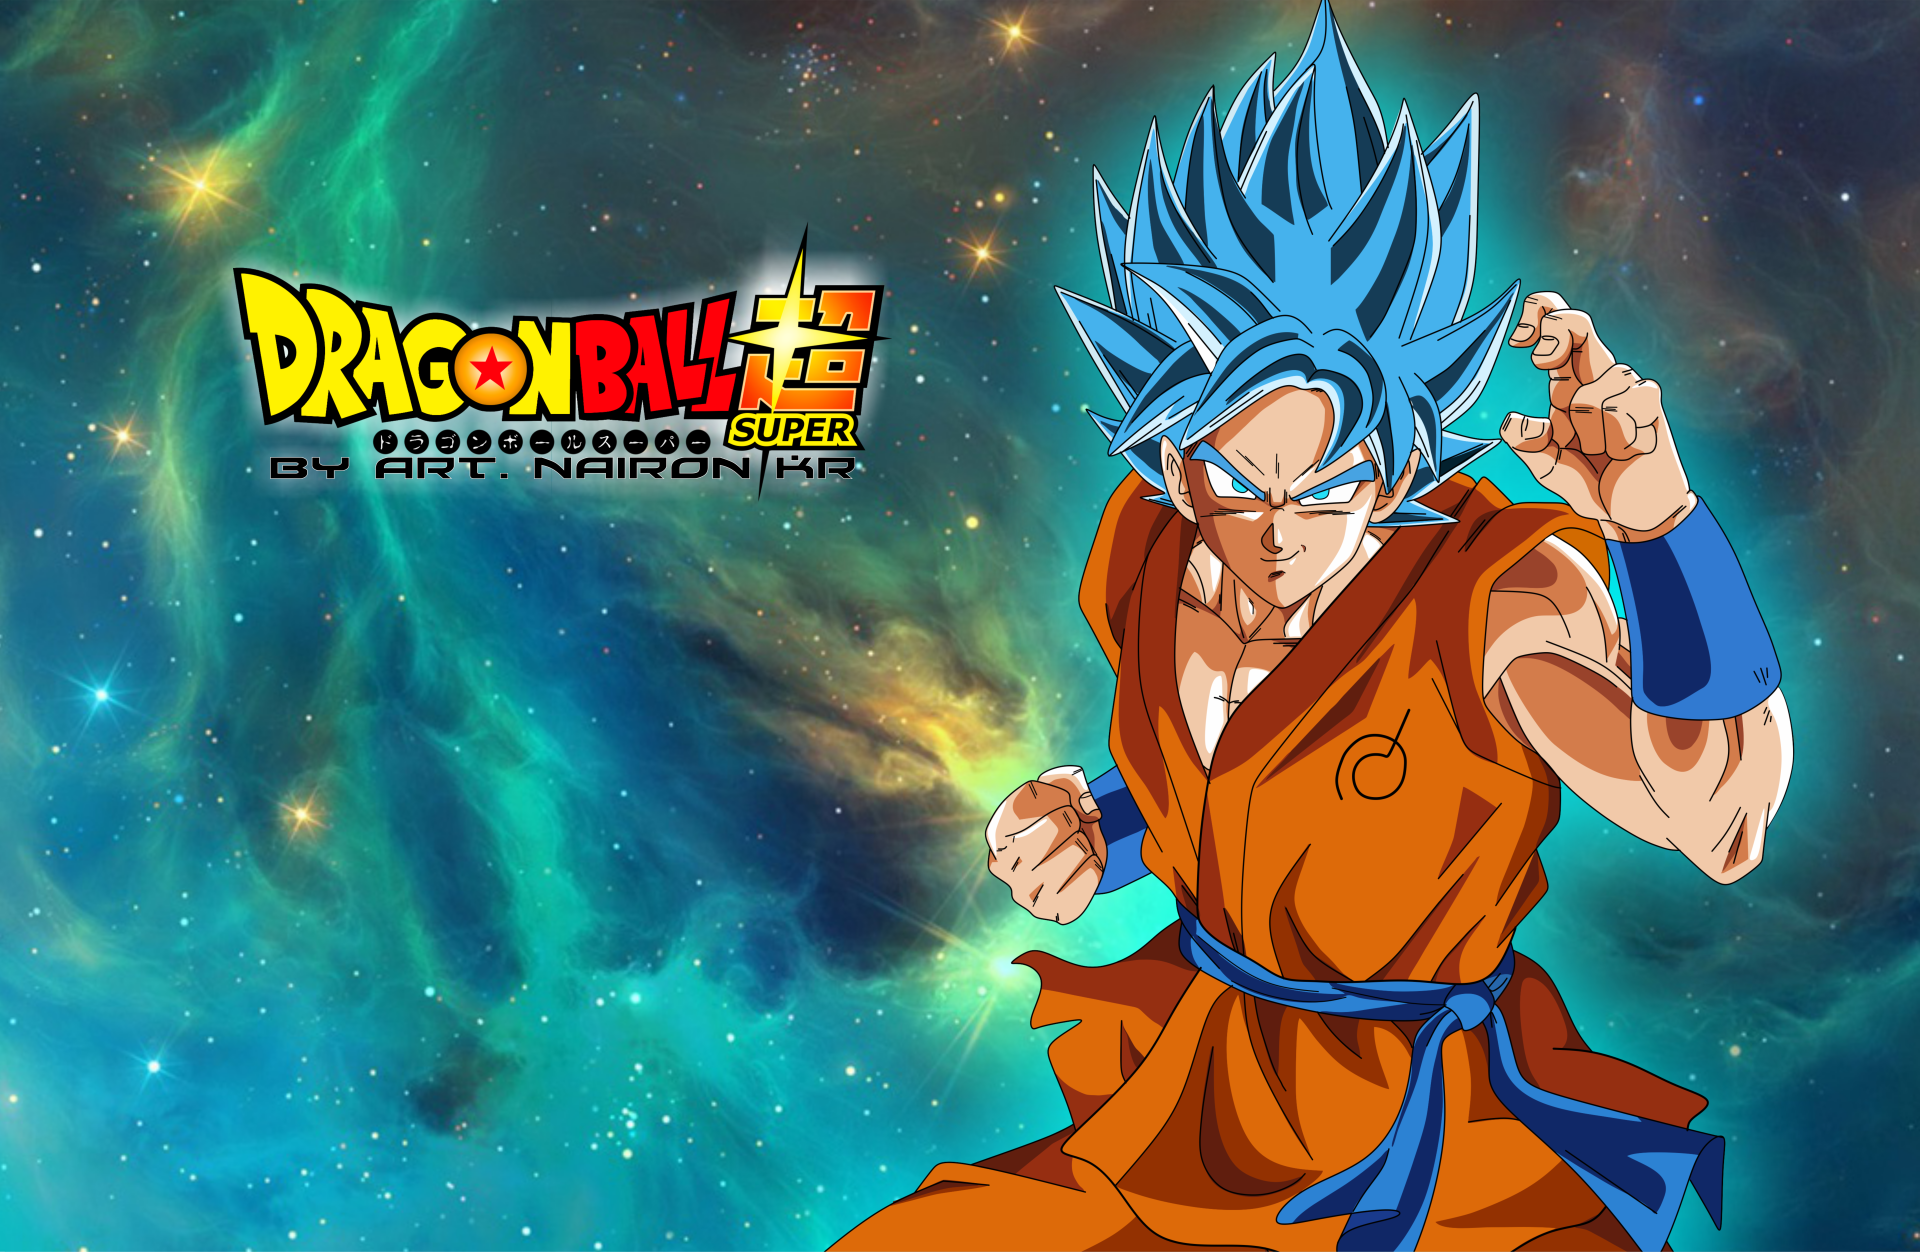 1059 dragon ball super hd wallpapers background images wallpaper hd wallpaper background image id673996 10942x7134 anime dragon ball super voltagebd